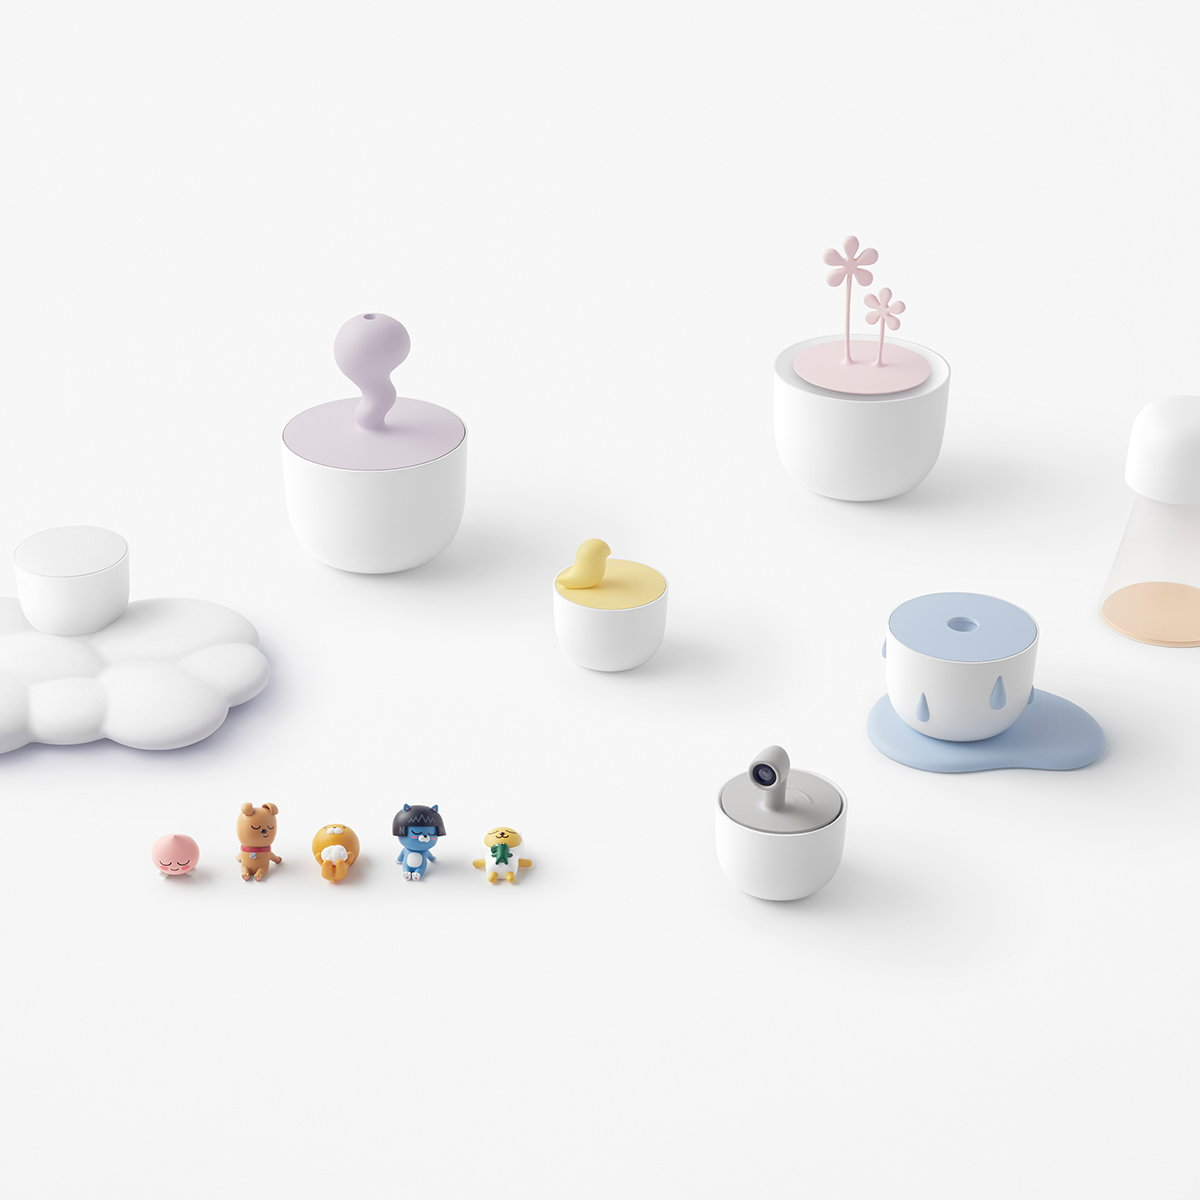 nendo Designs IoT Home Appliances for Kakao